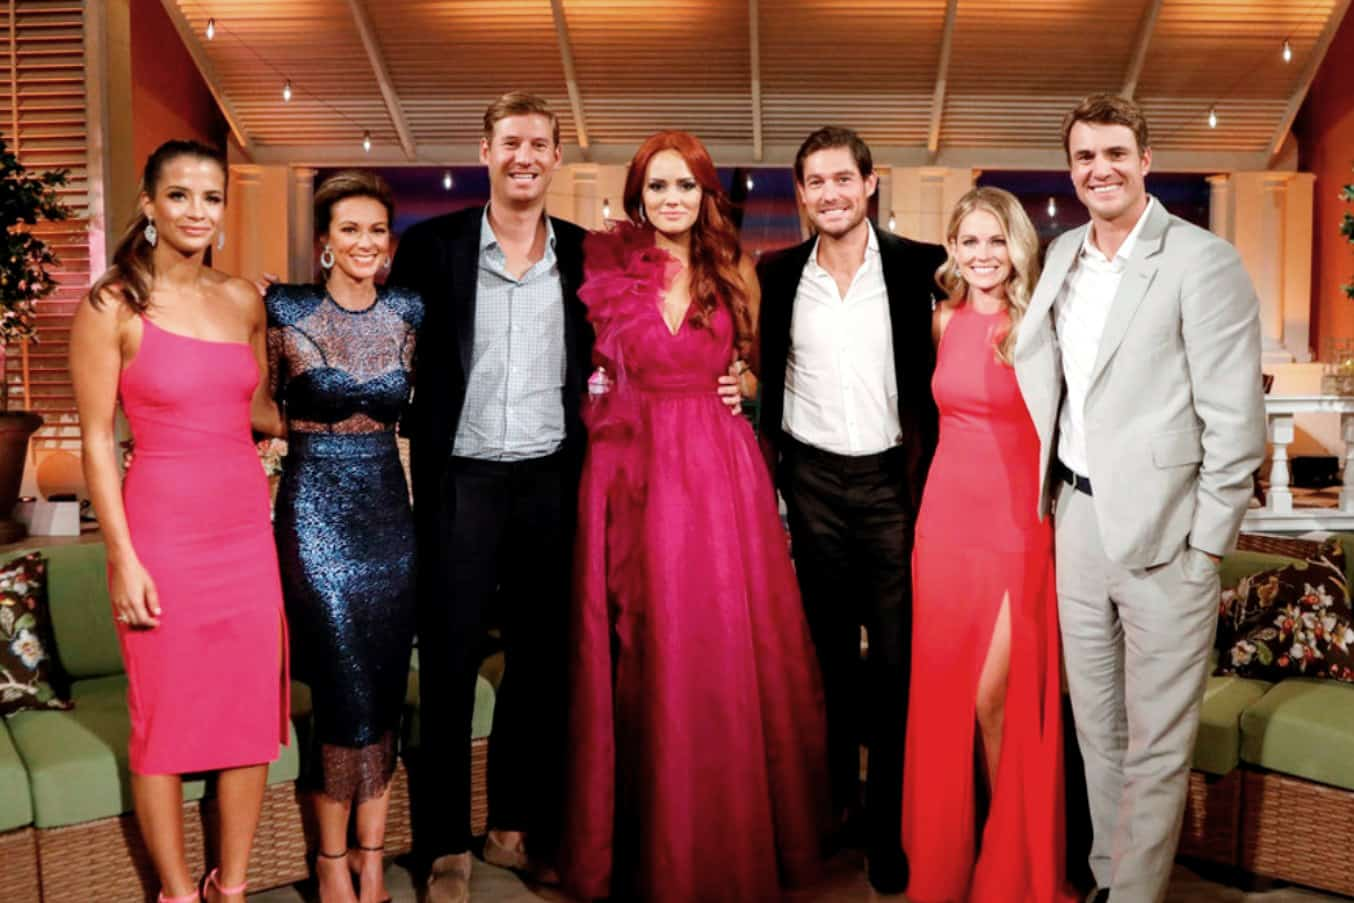 PHOTOS: Southern Charm Filming Starts on Season 7 as Kathryn Dennis Denies Relationship With Thomas, Plus is There a New Cast Member?